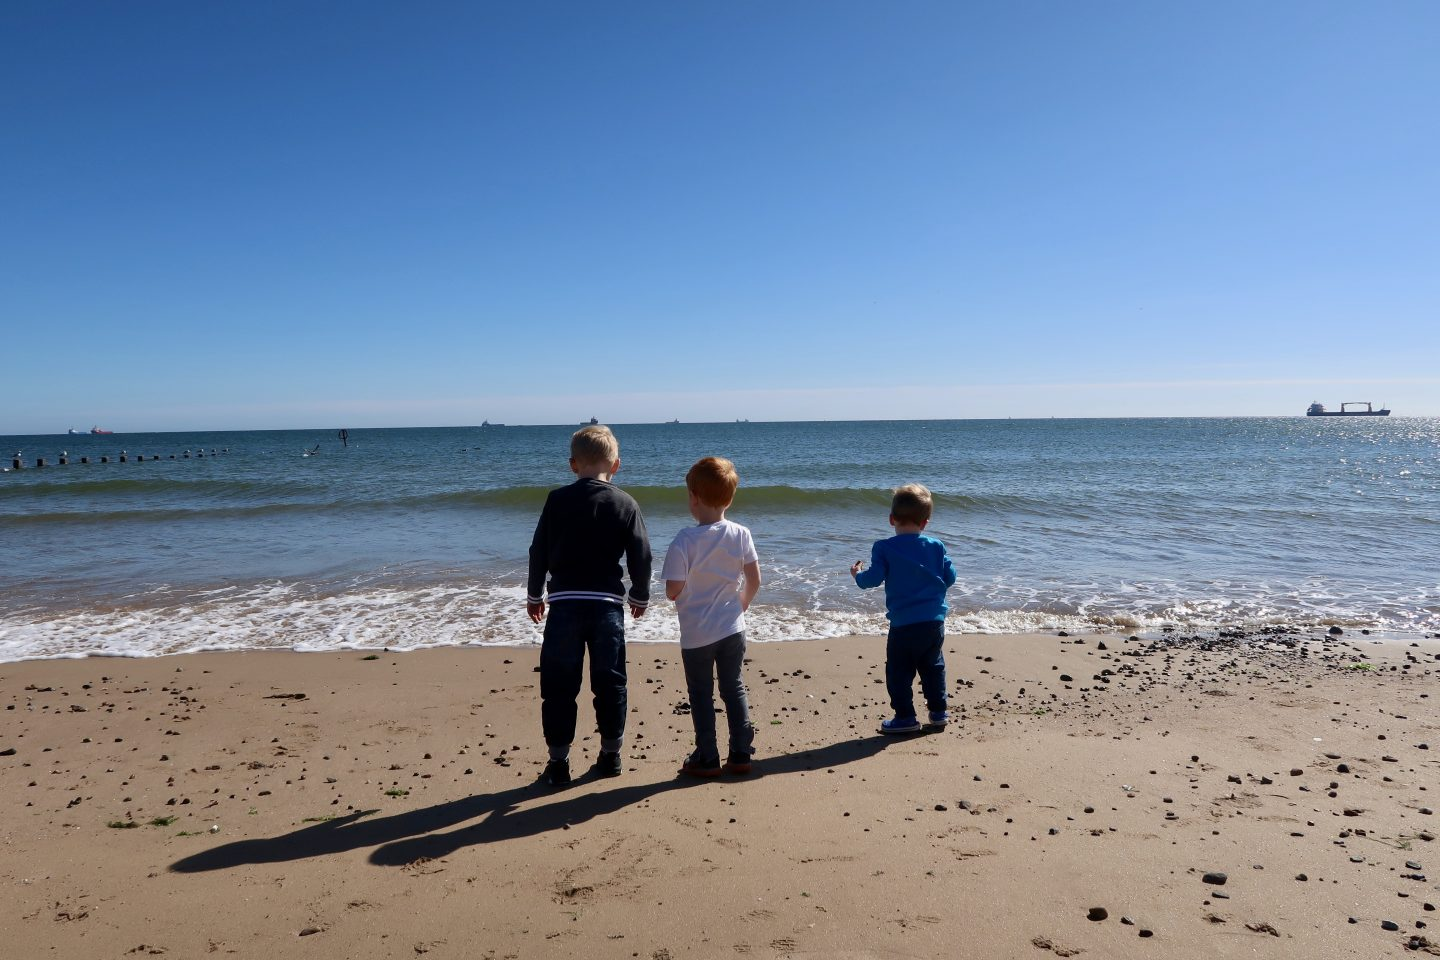 3 boys standing on the beach facing the sea